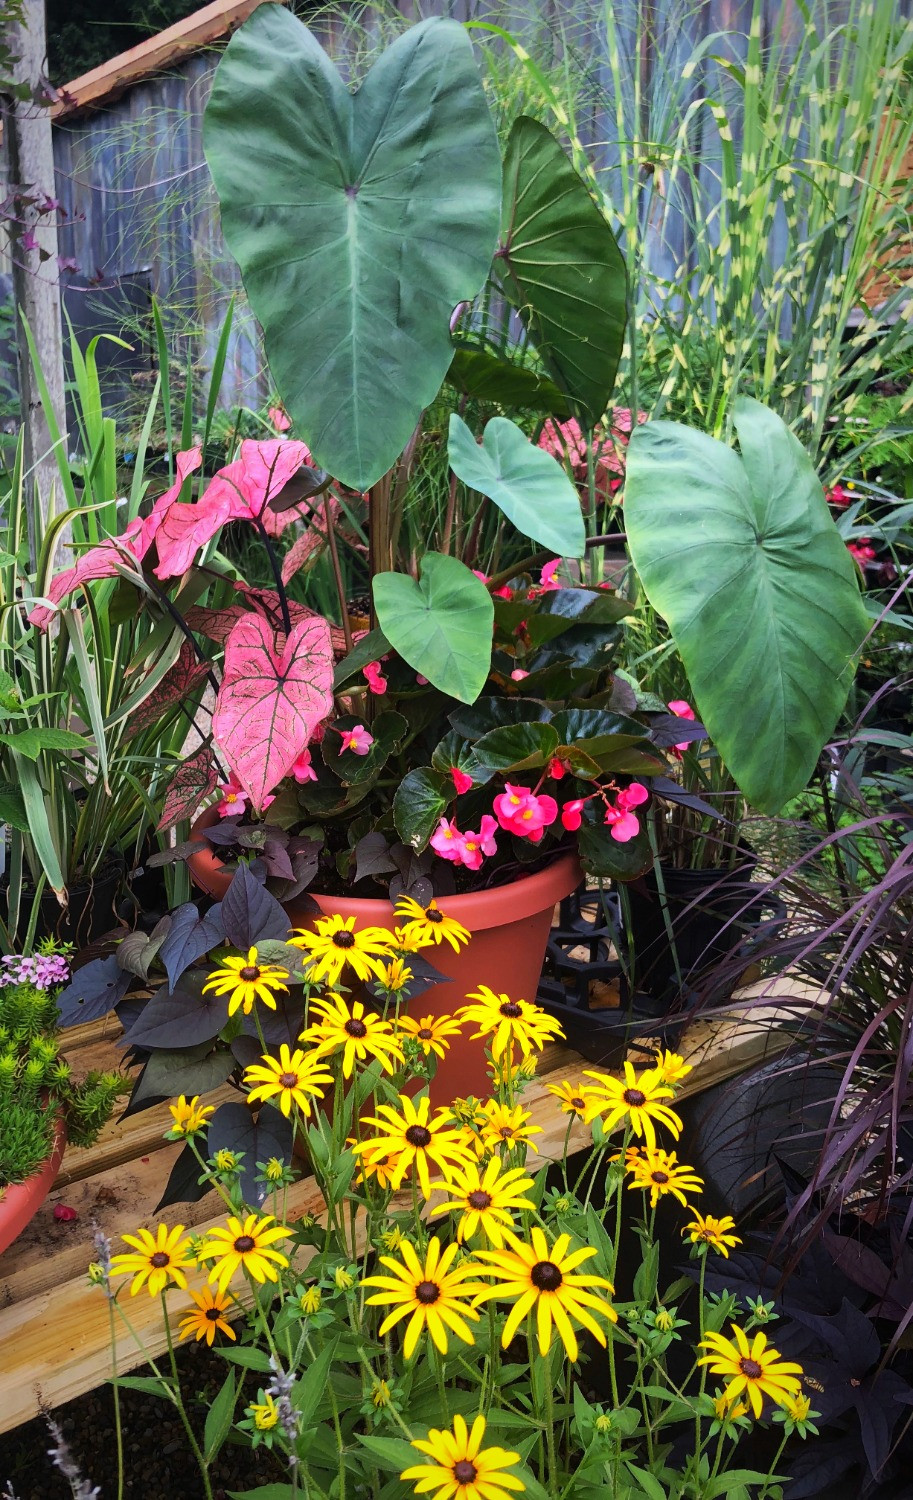 Colorful container garden at A Growing Concern garden center in Hendersonville